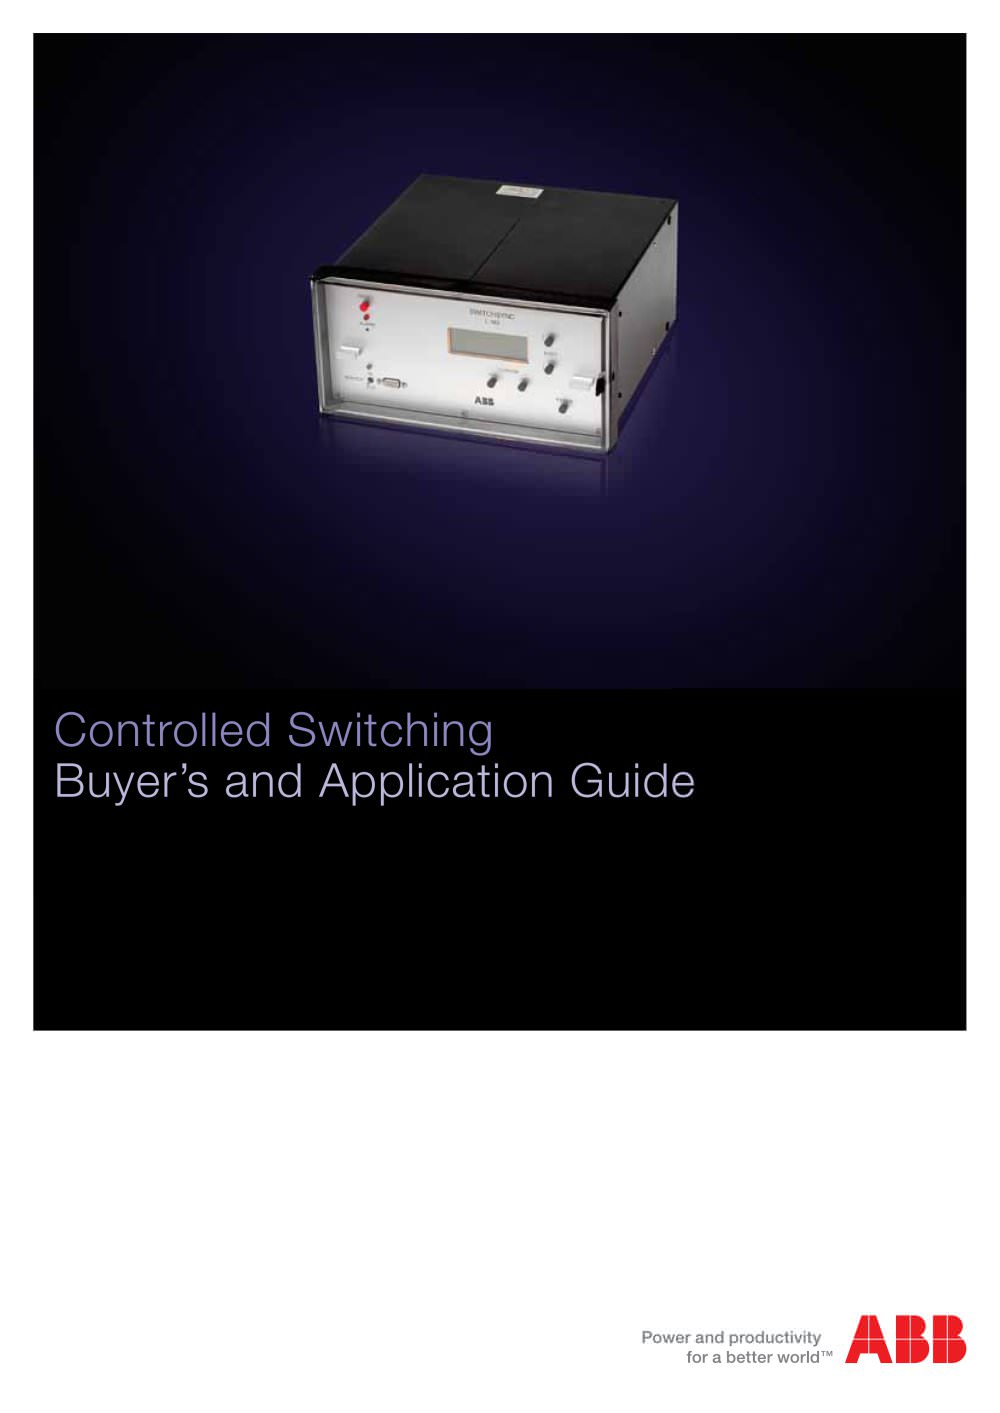 Controlled Switching Buyers And Application Guide For Switchsync Mediumvoltage Switchgear Of Capacitors Filter Circuits 1 54 Pages